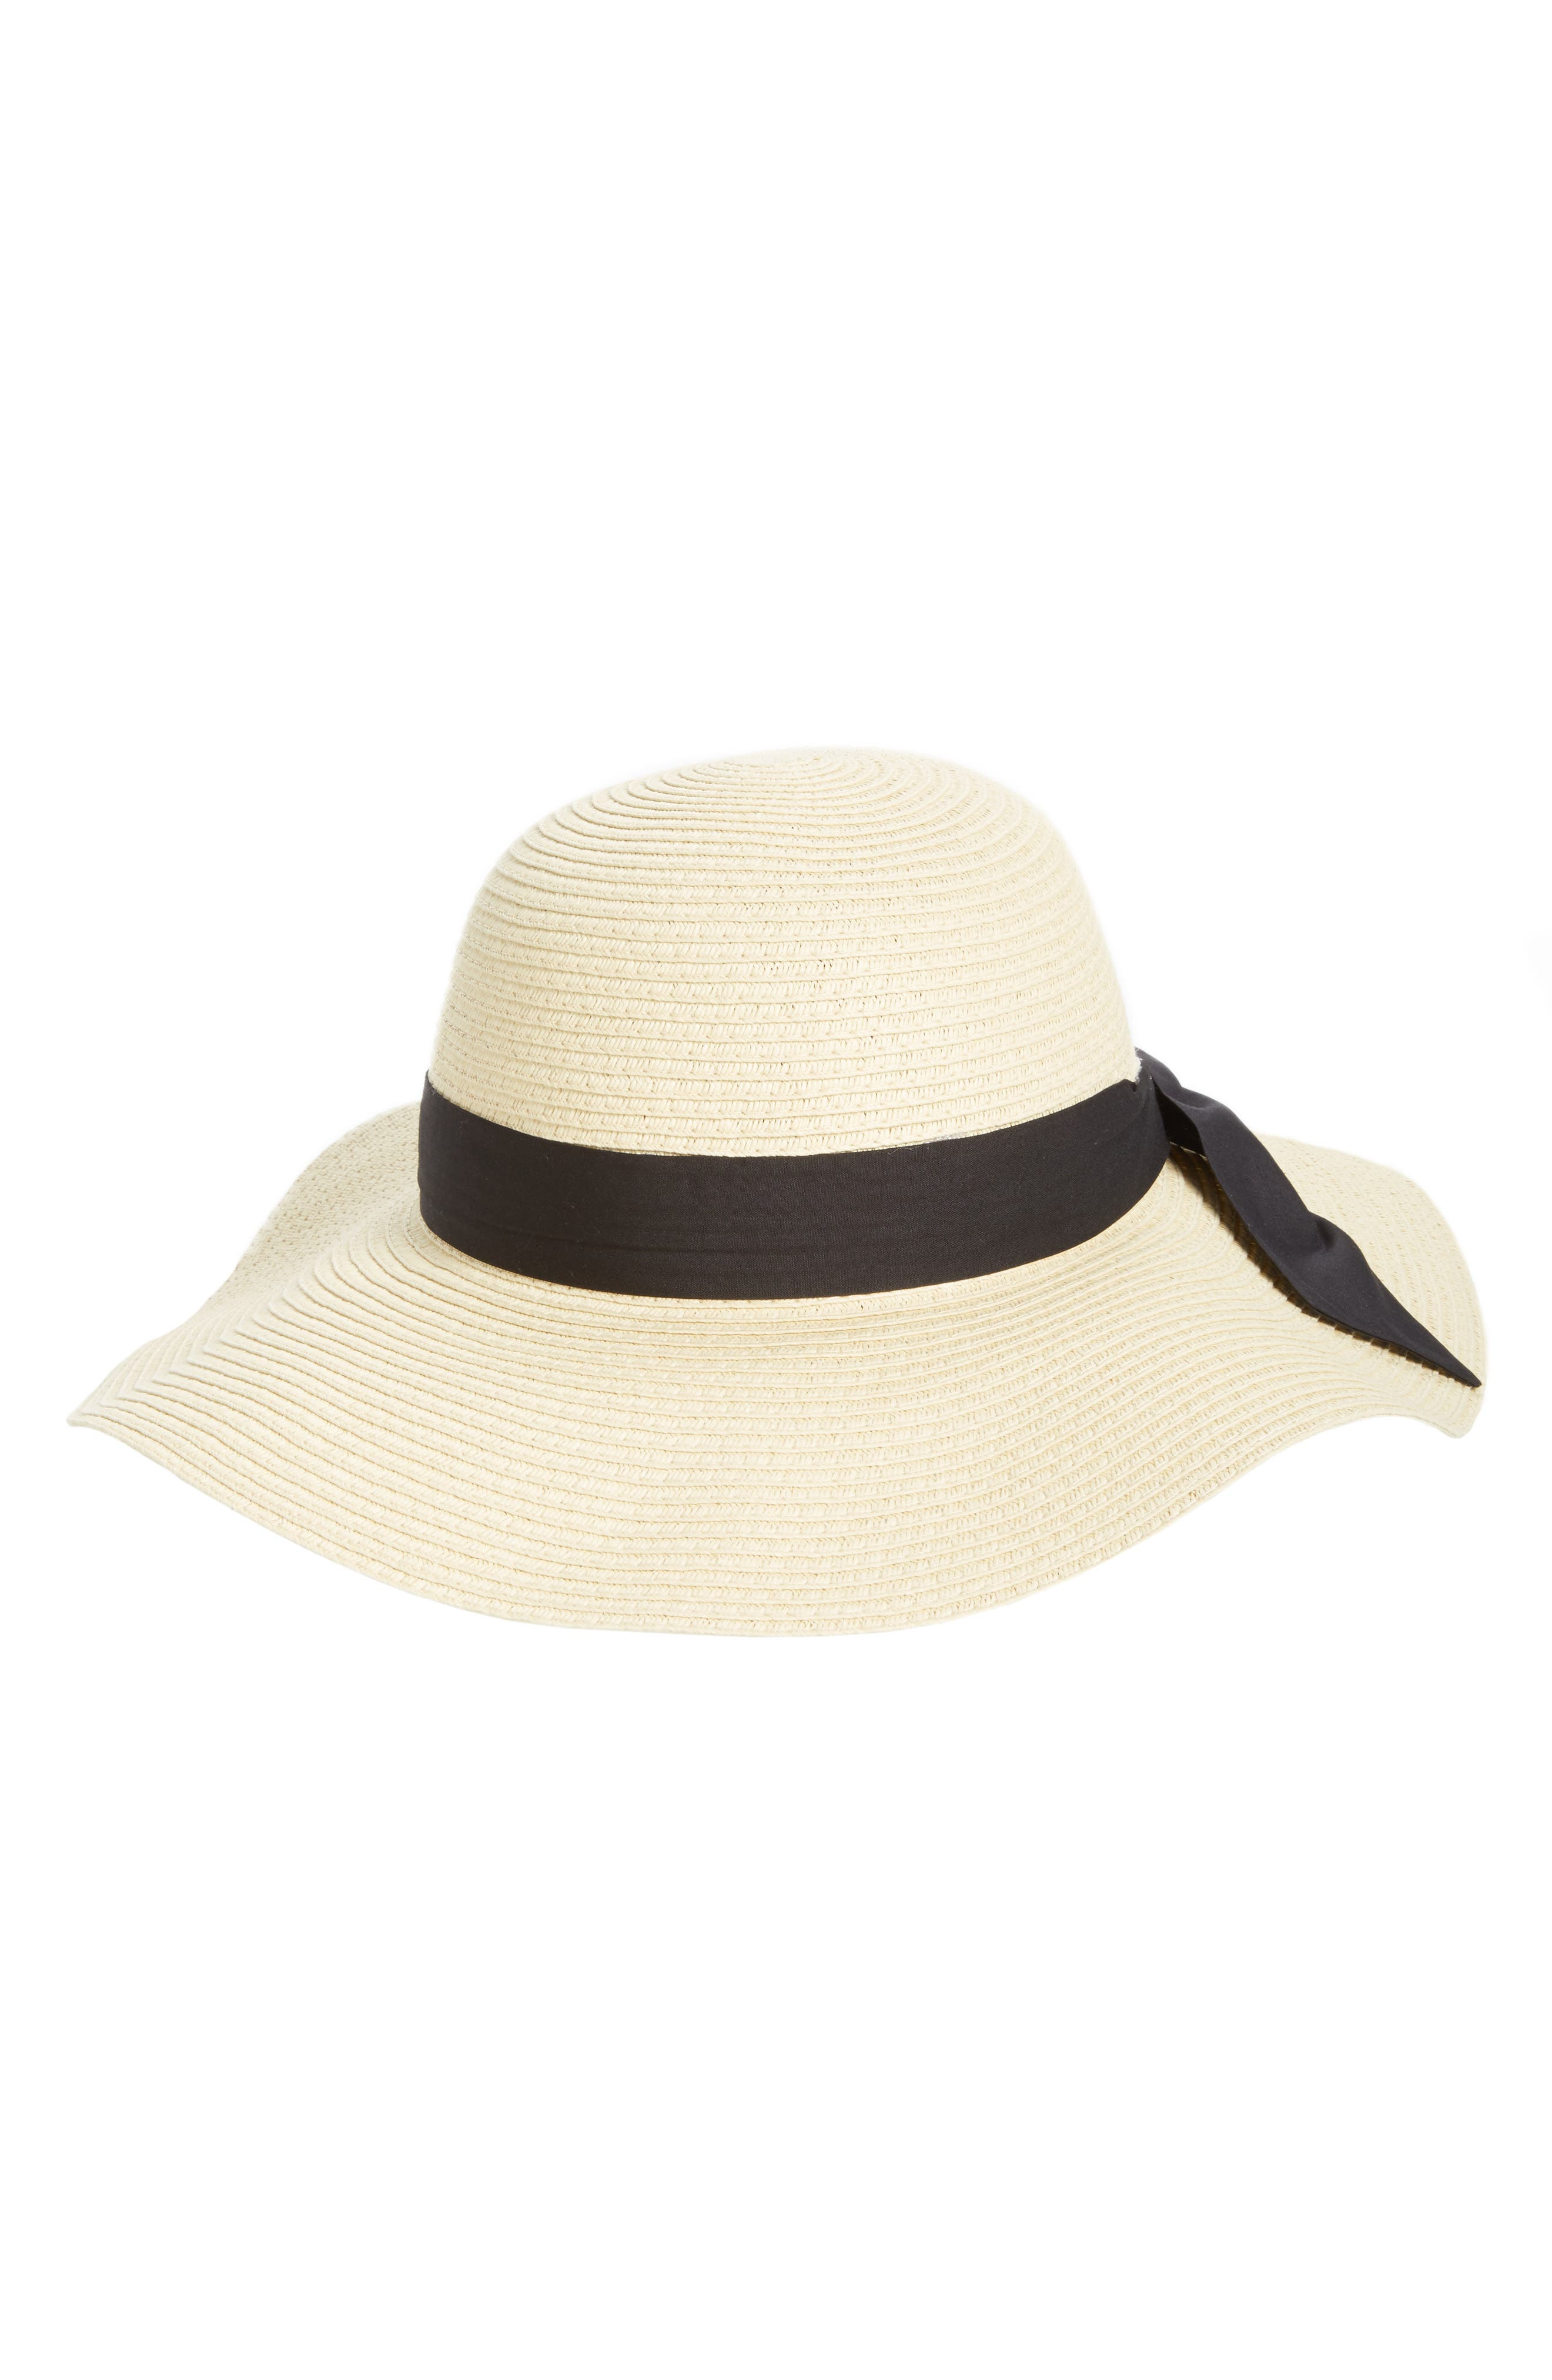 BP. Bow Band Floppy Straw Hat, Main, color, NATURAL/ BLACK